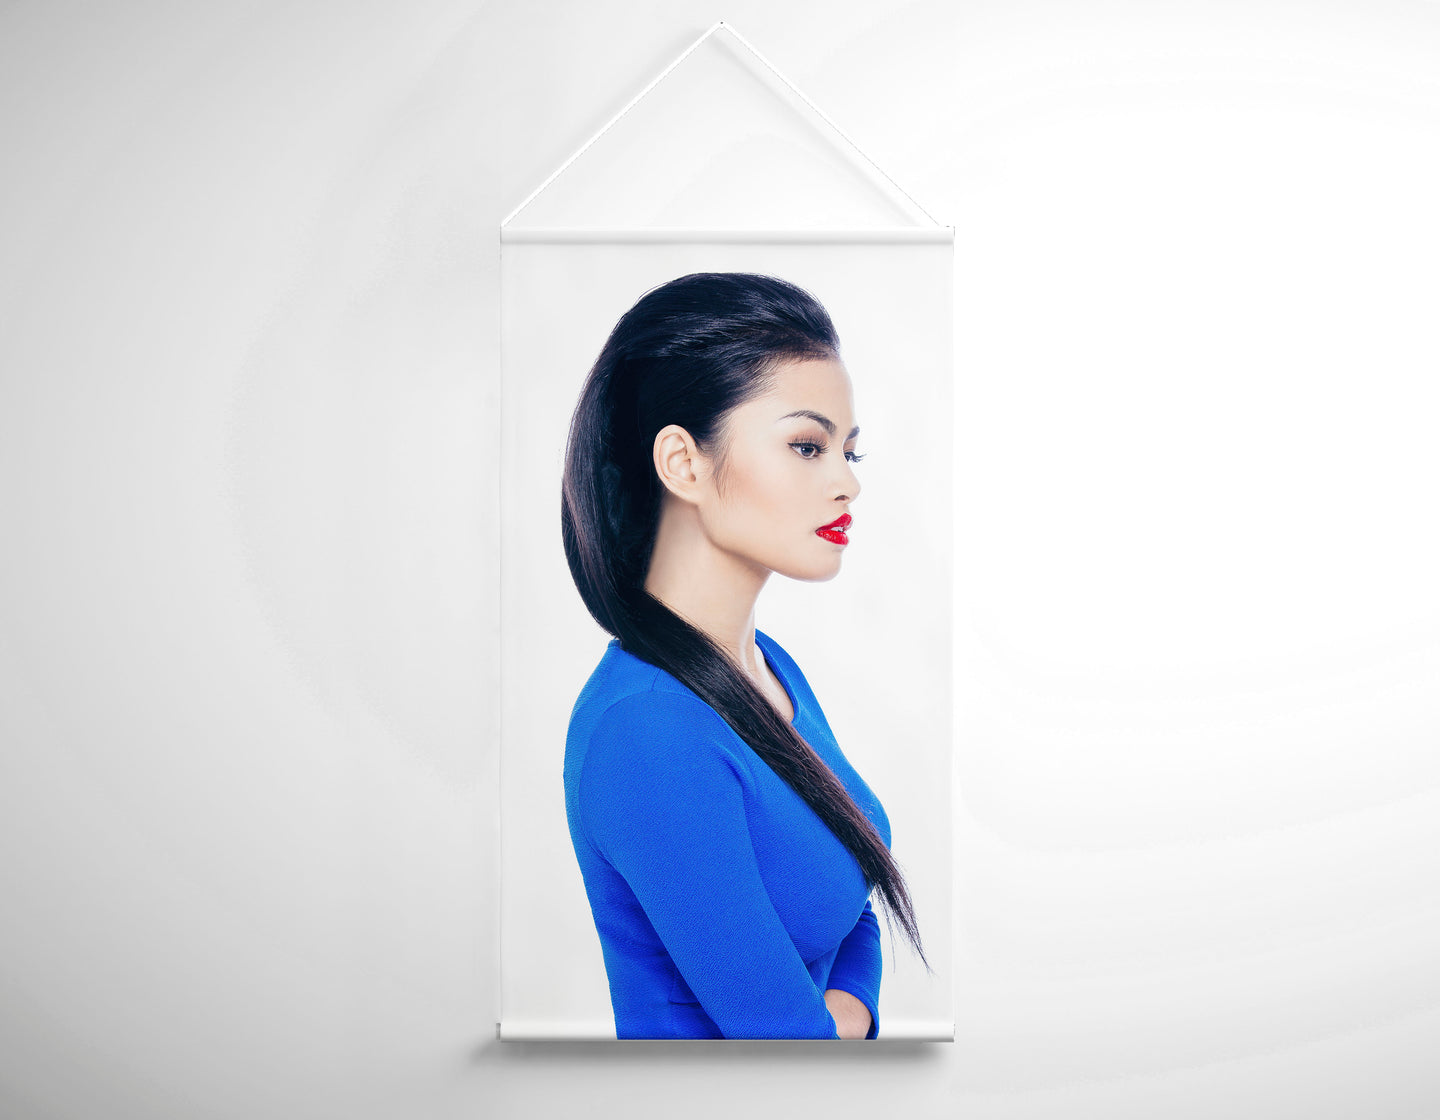 Salon Banner - Woman with Long Straight Hair in Blue Dress